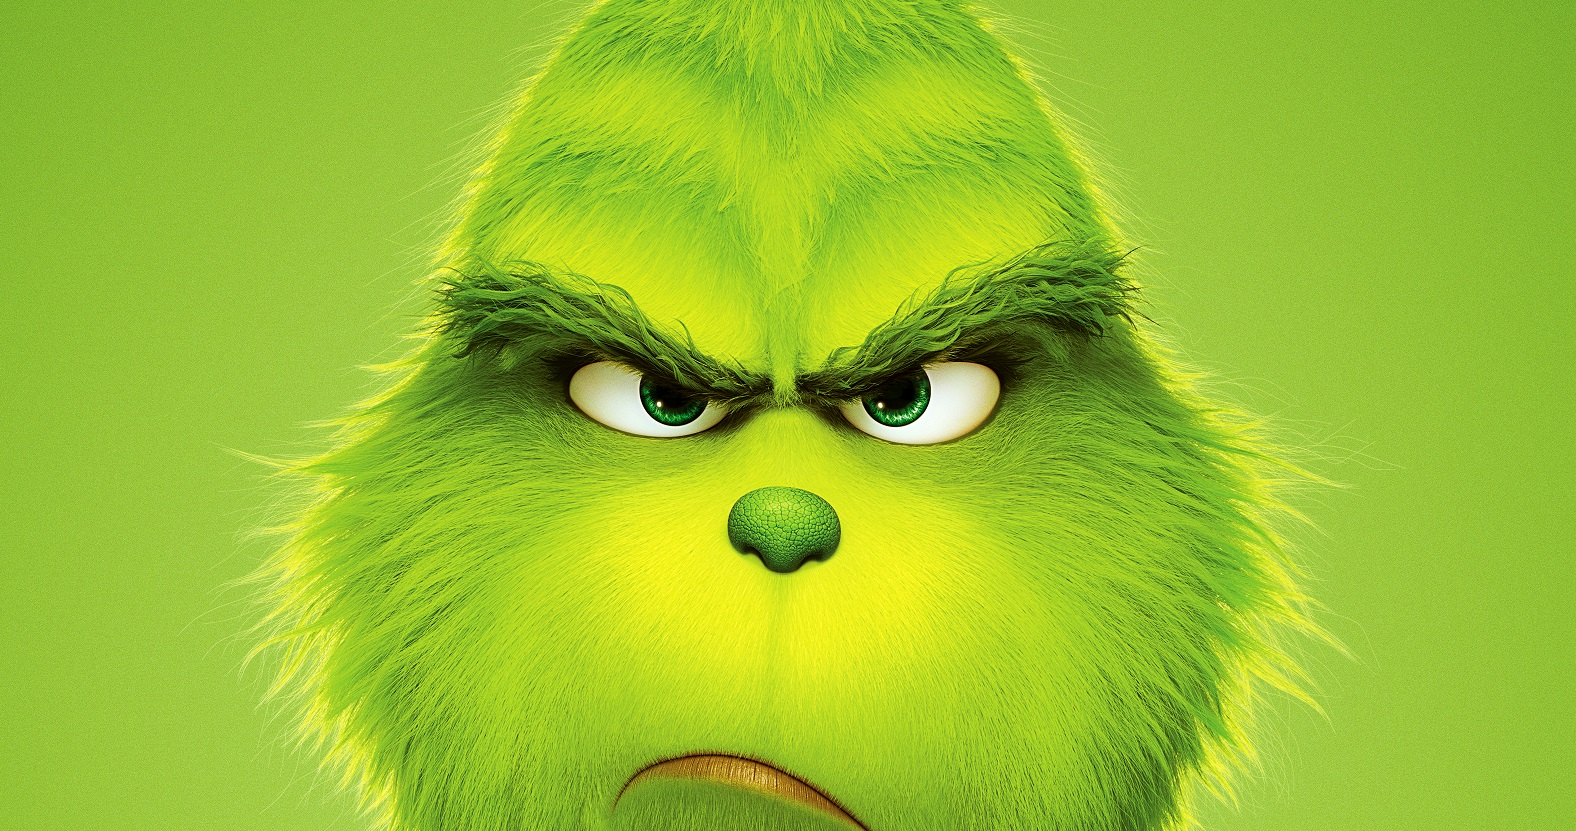 """The Grinch"" (Photo courtesy Universal/Illumination)"